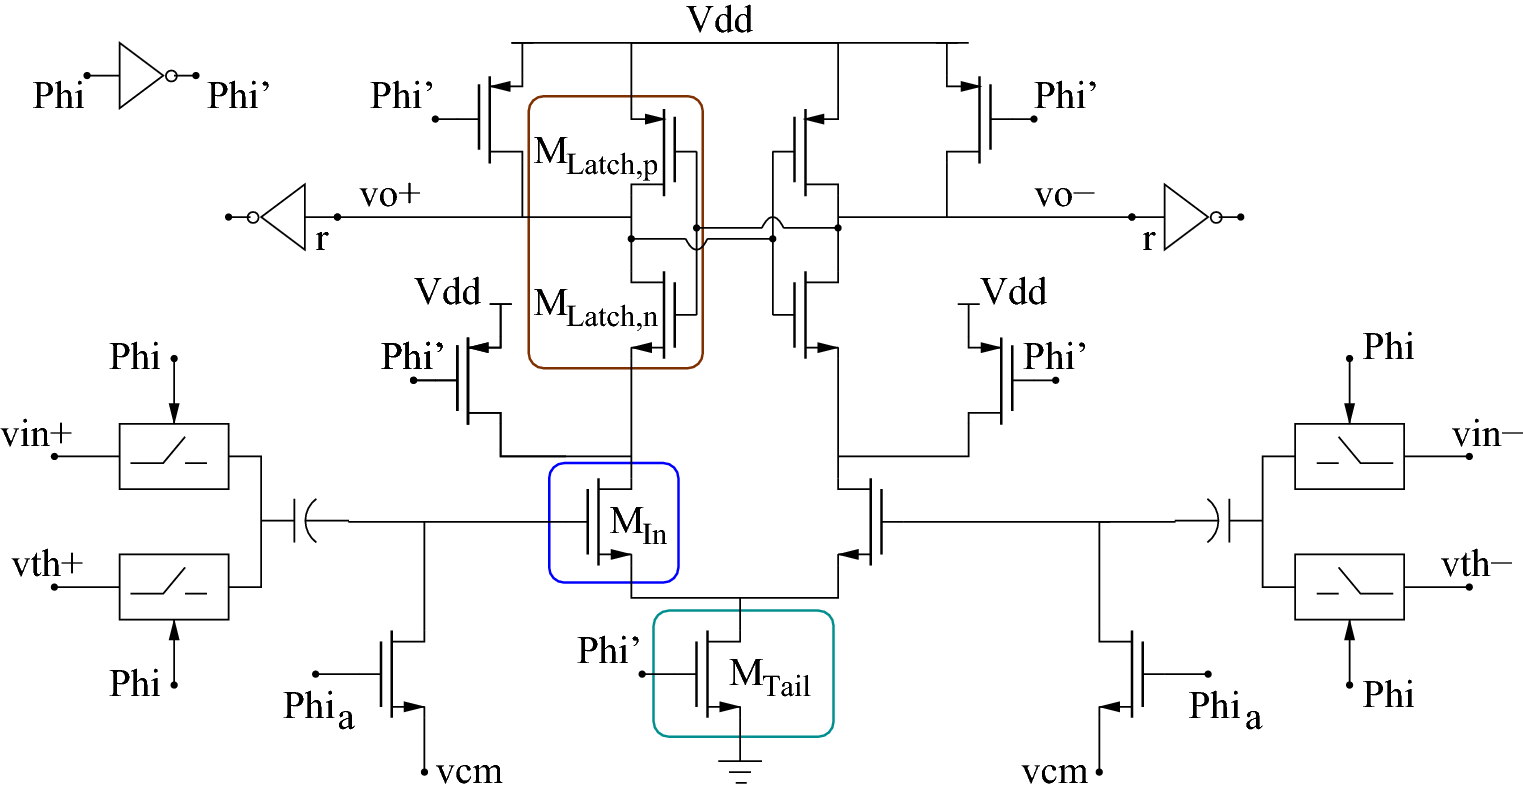 Modeling And Sizing Of Non Linear Cmos Analog Circuits Used In Mixed This Circuit Is Referred To As A Dominant On Latching Fig 5 Schematic Dynamic Comparator